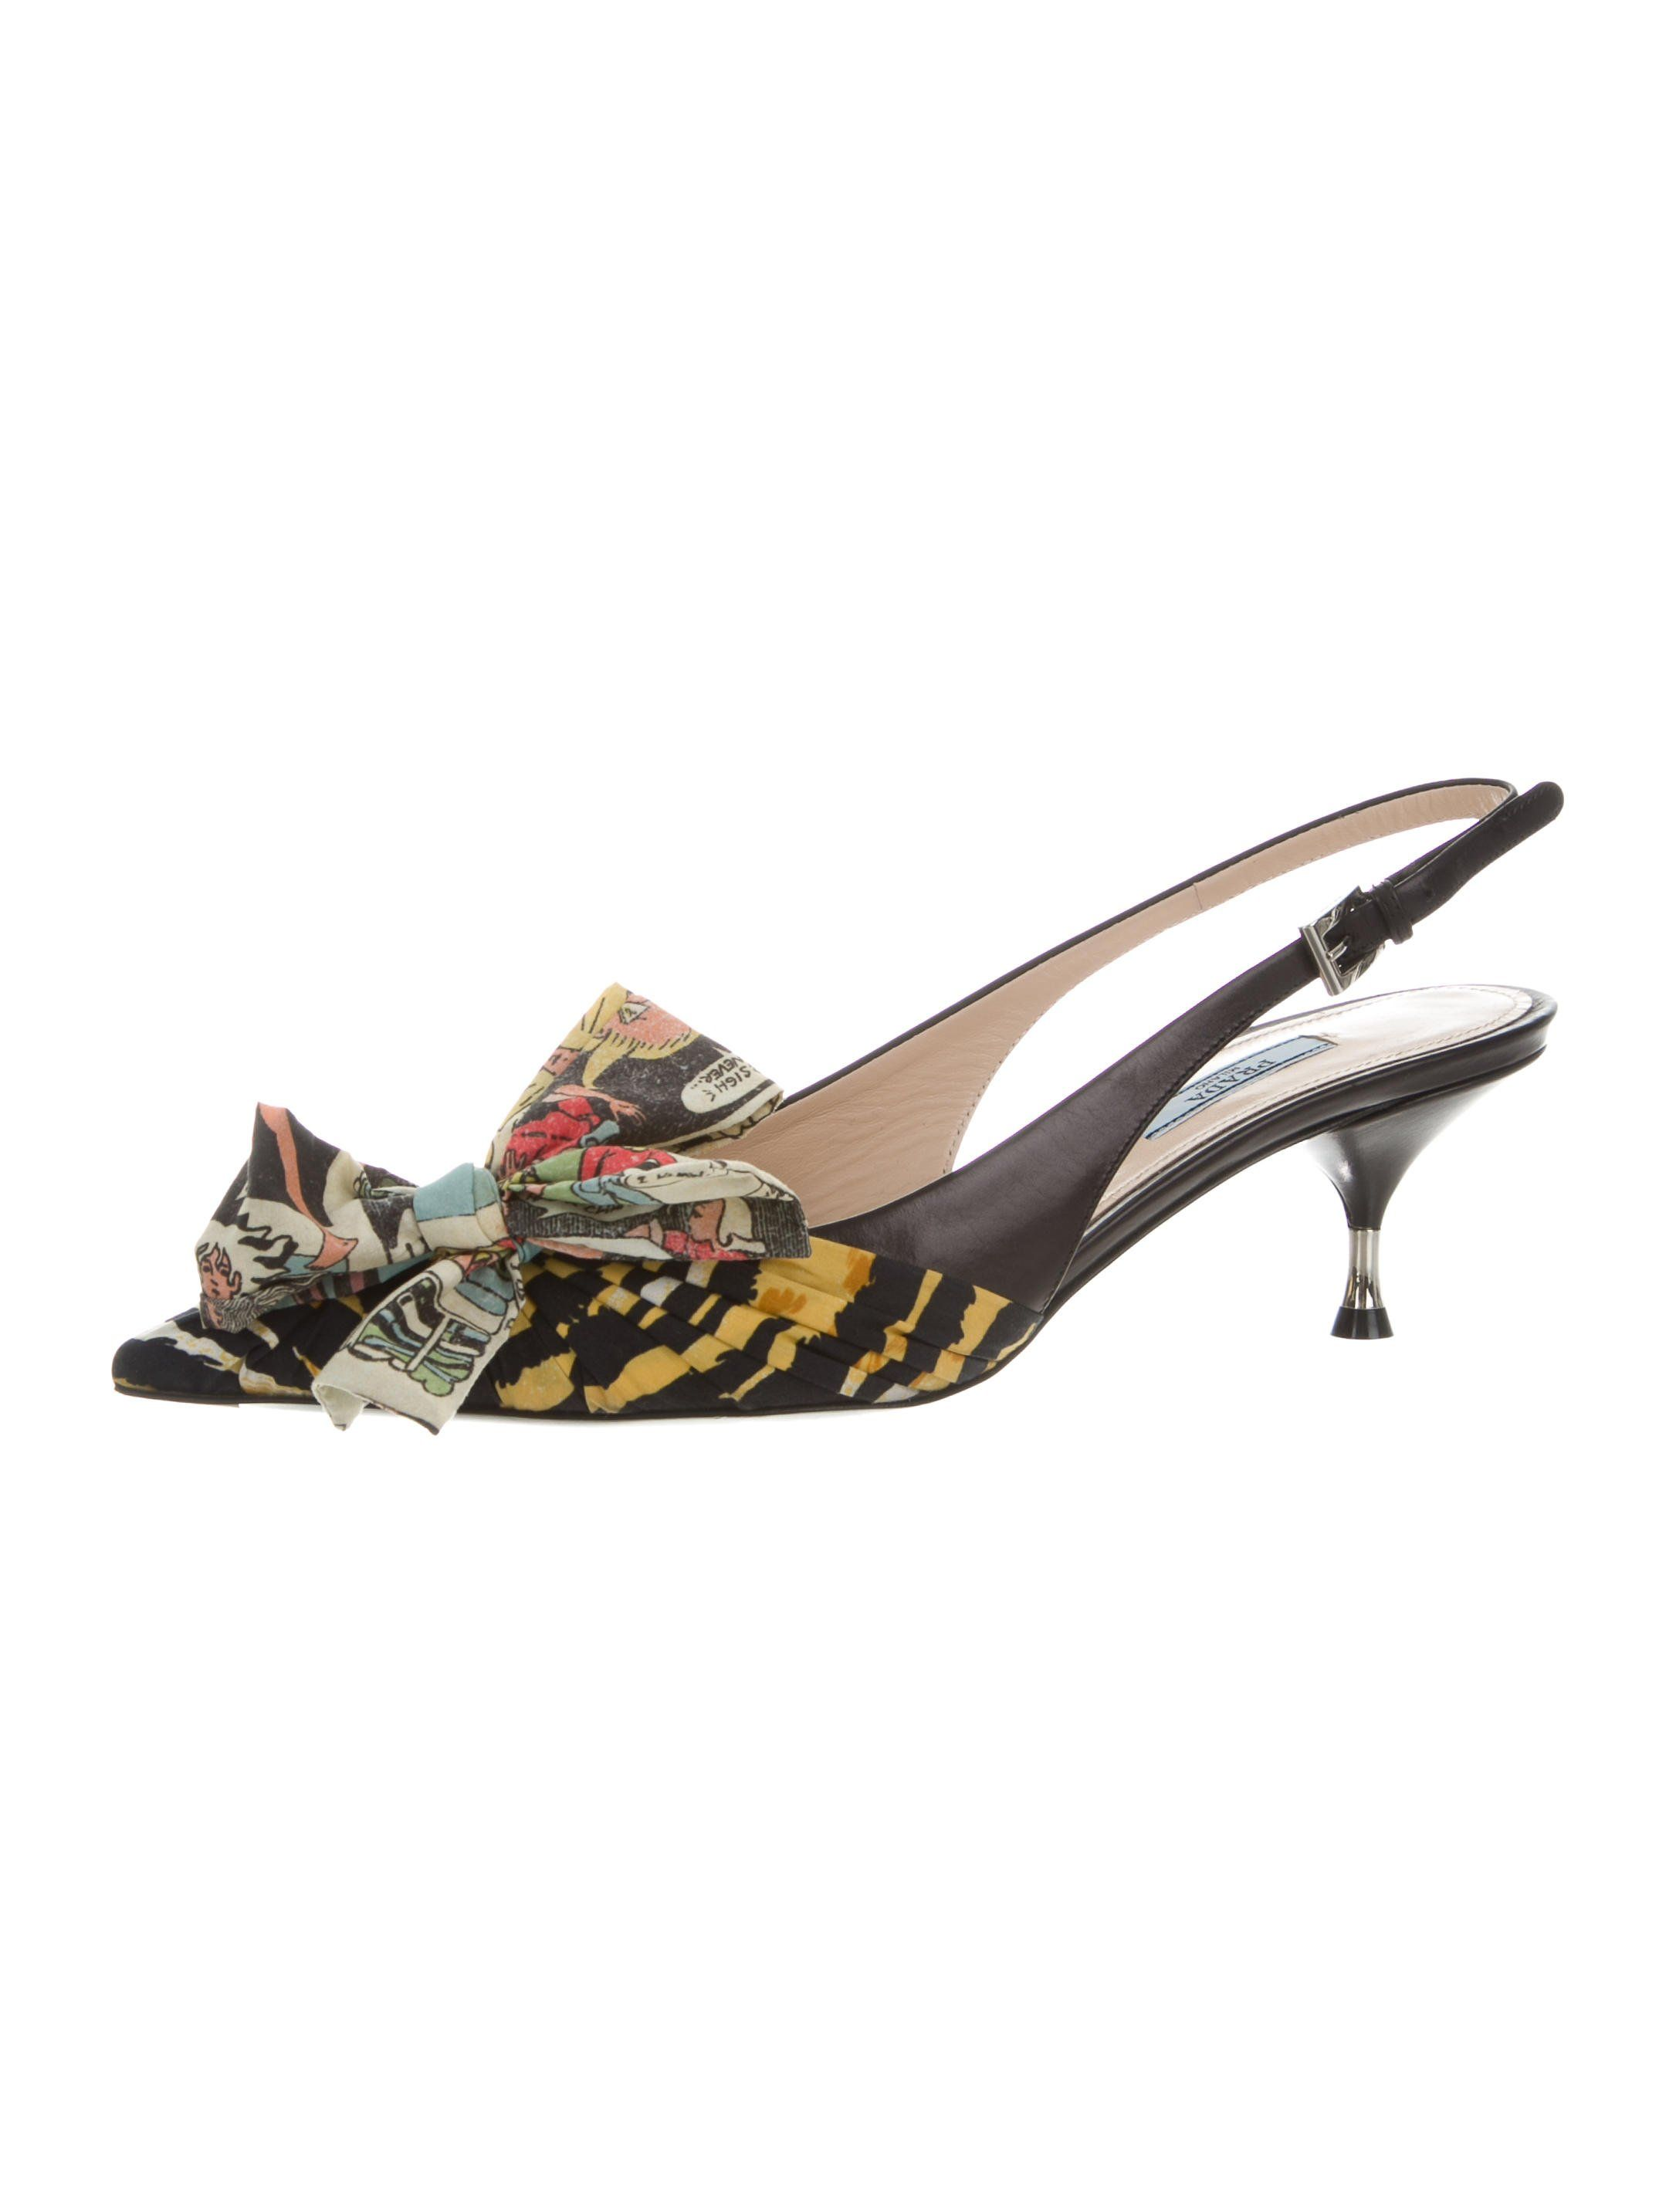 From The 2017 Collection Black Leather Prada Slingback Pumps With Printed Cap Toes Featuring Bow Accents Metal Kitten Heels Pumps Slingback Pump Kitten Heels